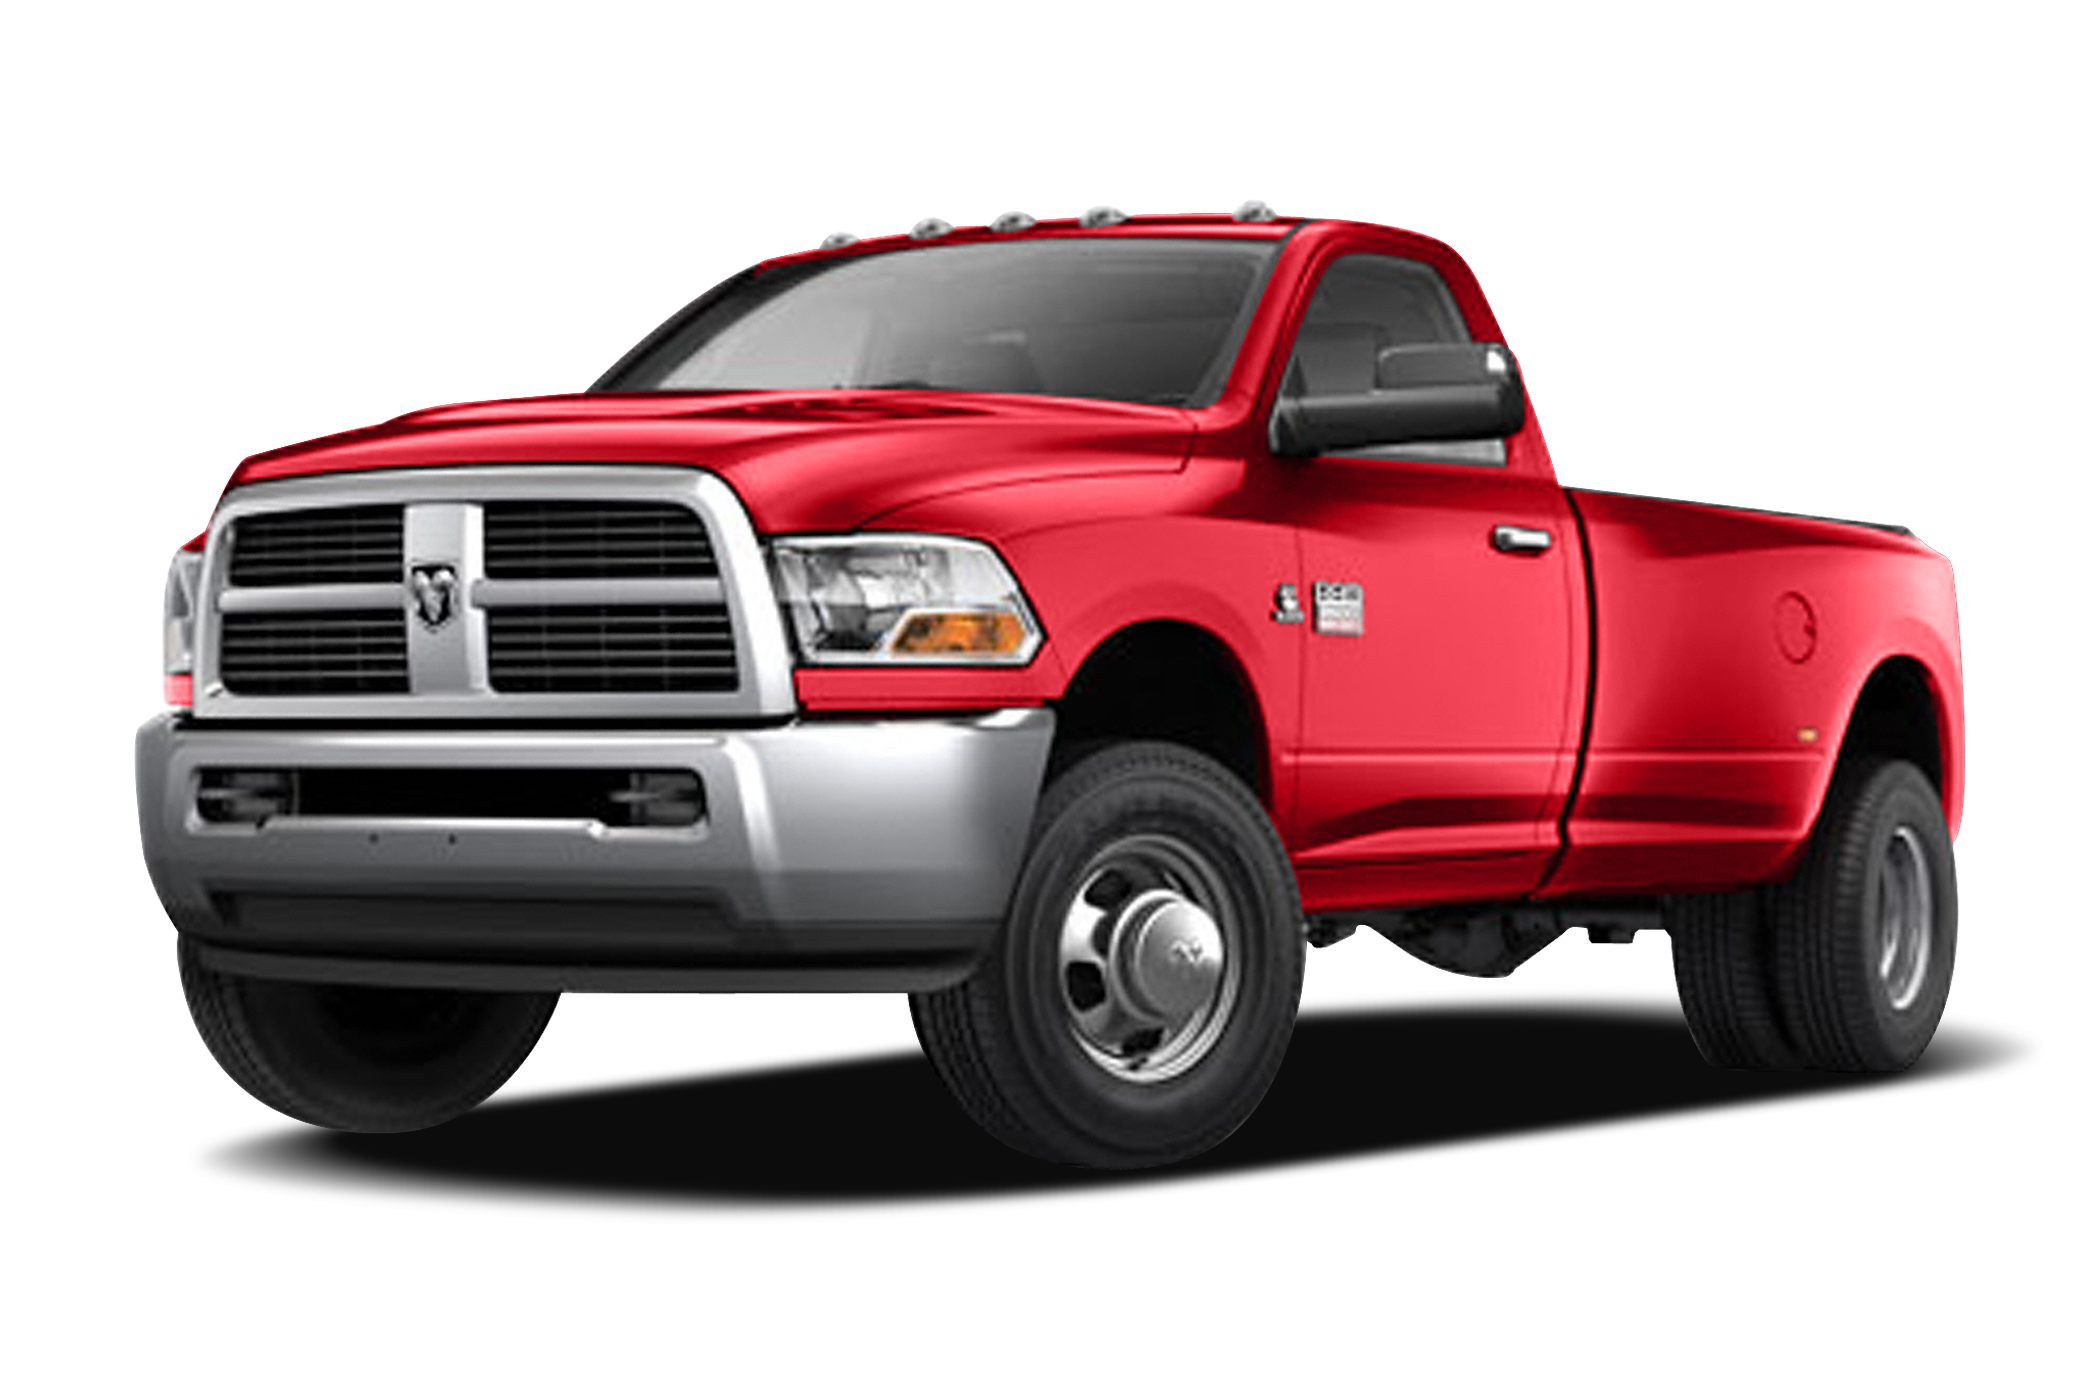 2010 Dodge Ram 3500